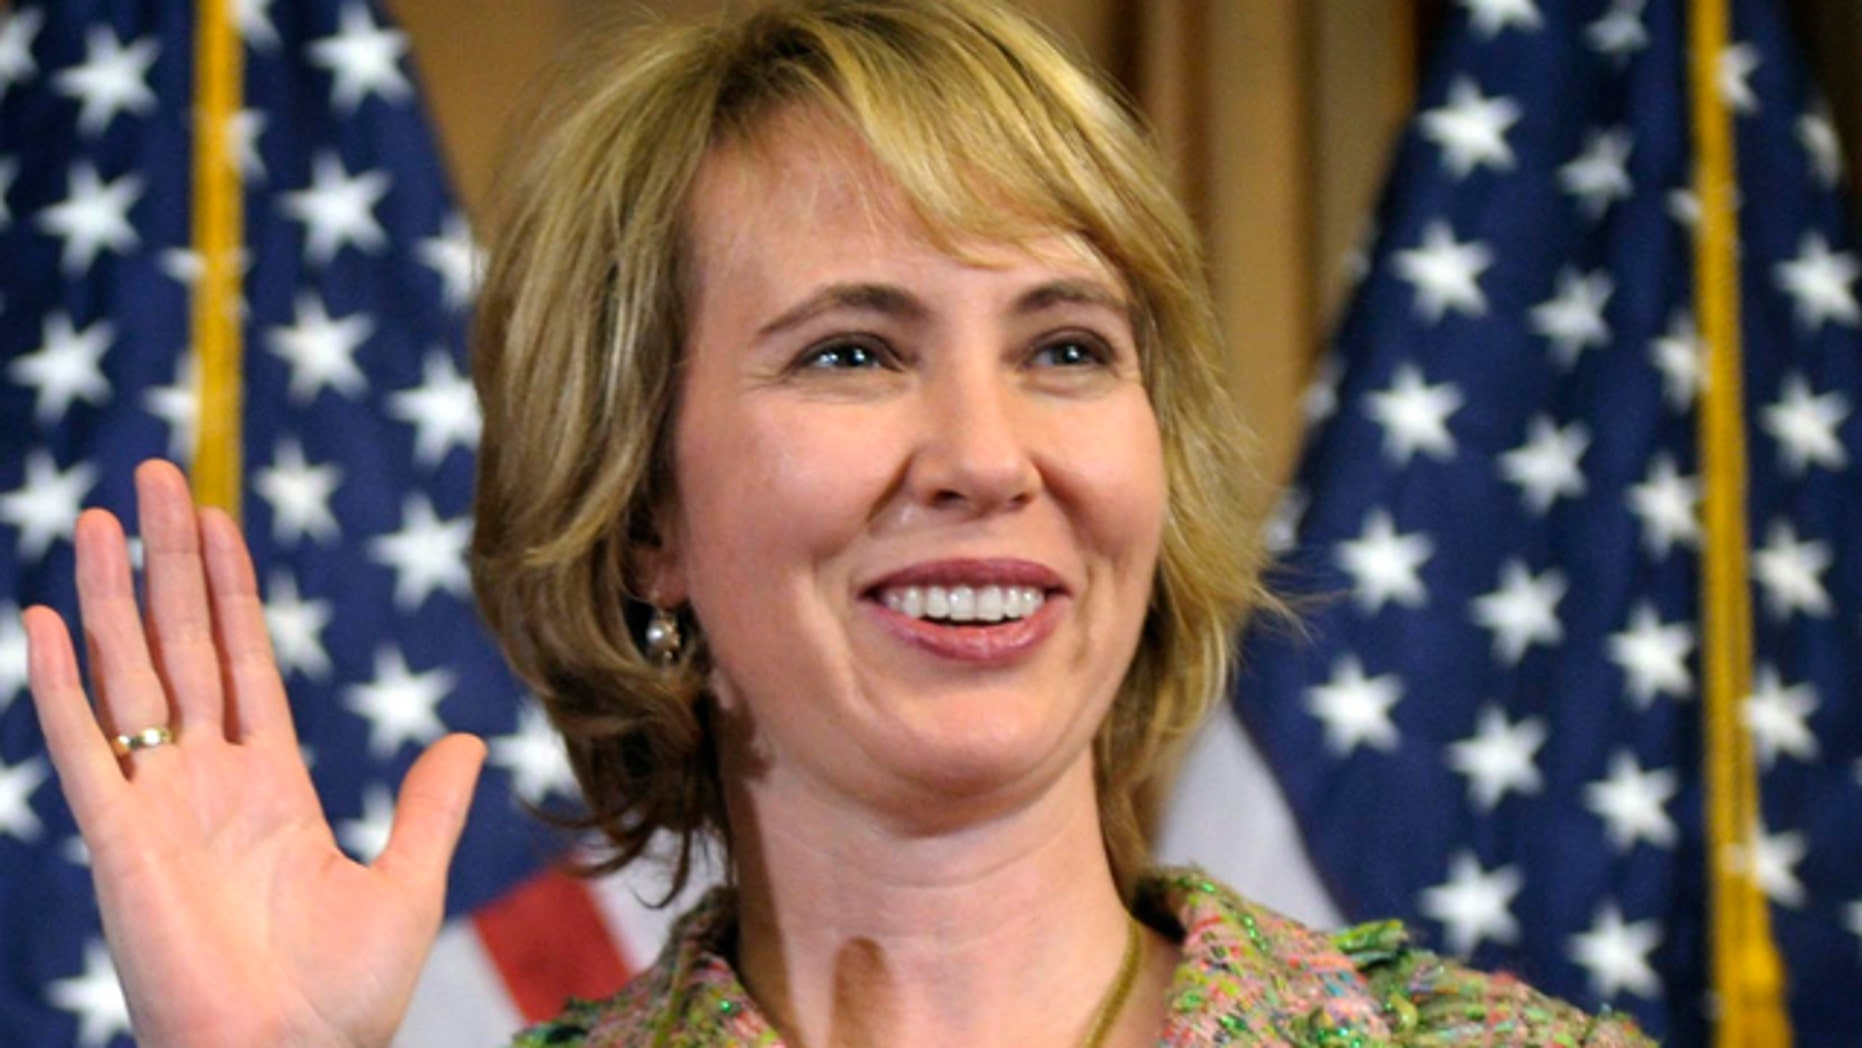 A Jan. 5, 2011 file photo shows Rep. Gabrielle Giffords, D-Ariz., taking part in a reenactment of her swearing-in on Capitol Hill in Washington.